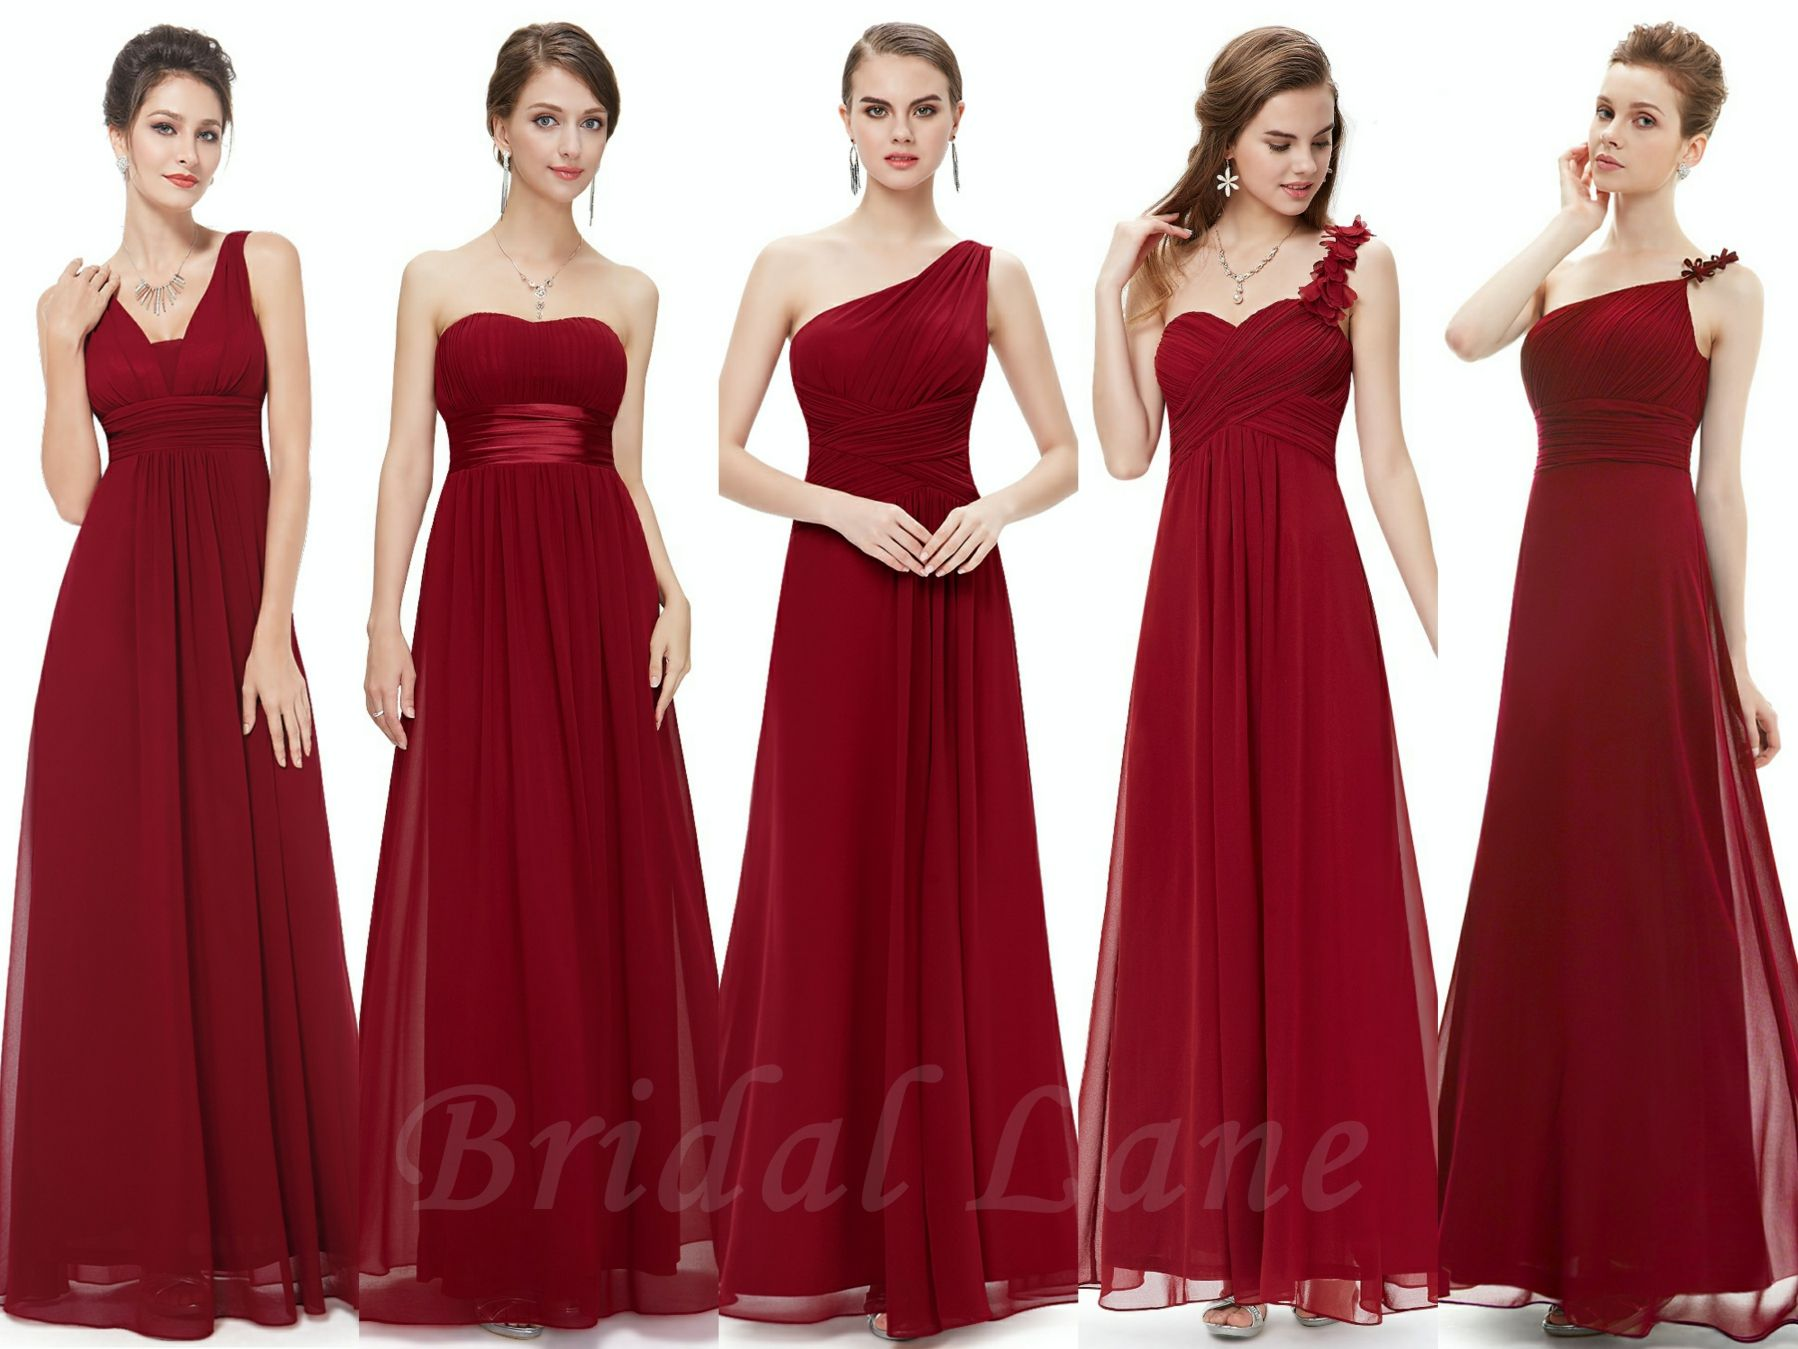 dd4a4c421b3 Burgundy   wine red bridesmaid dresses - Bridal Lane